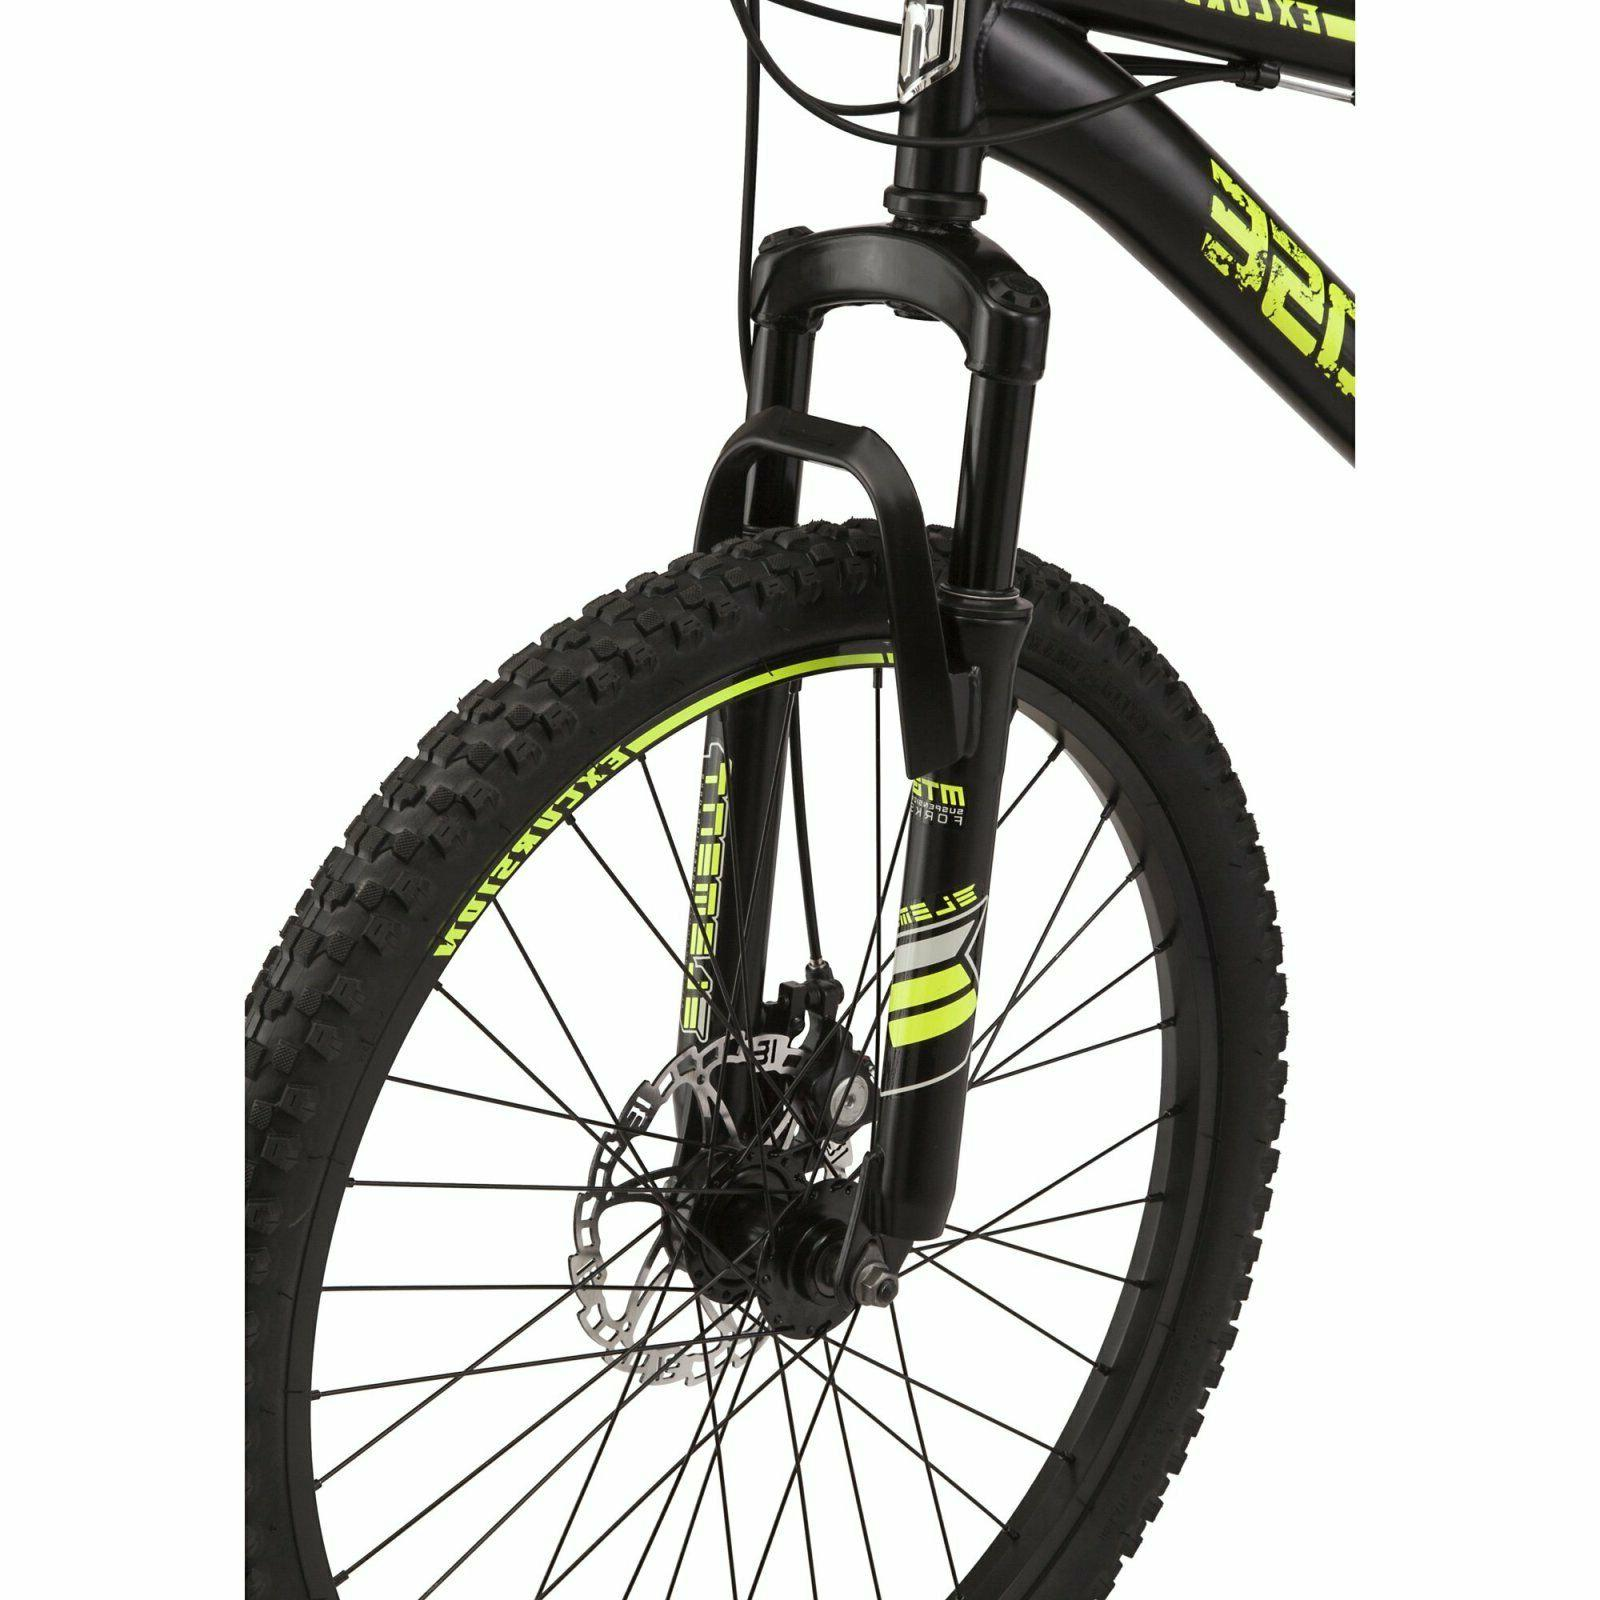 Mongoose Excursion Bike 24 Wheel 21 in Black and